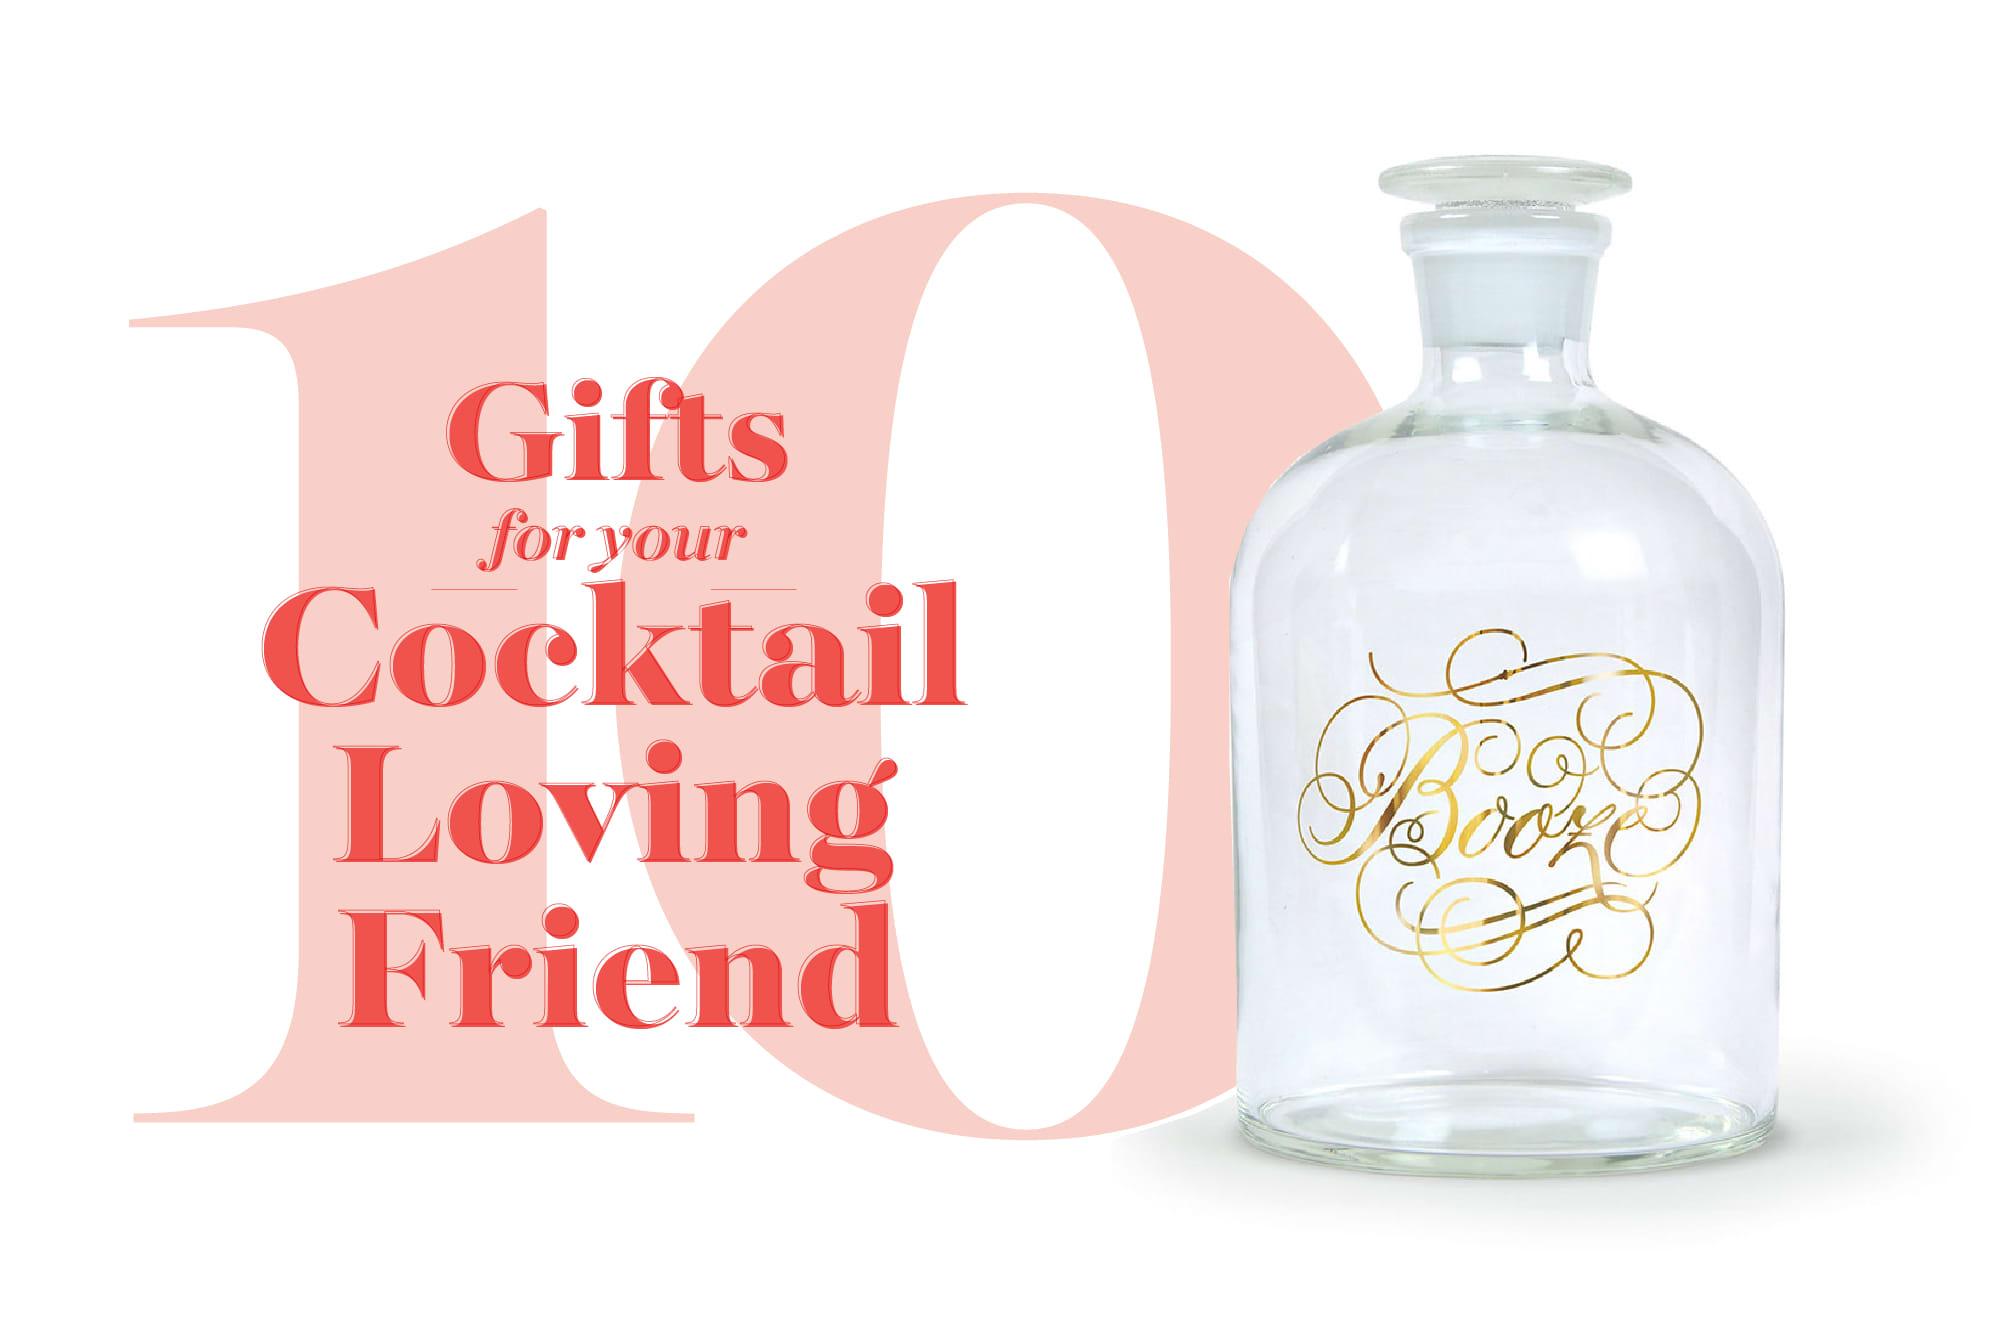 10 Great Gifts for Cocktail-Lovers: gallery image 1